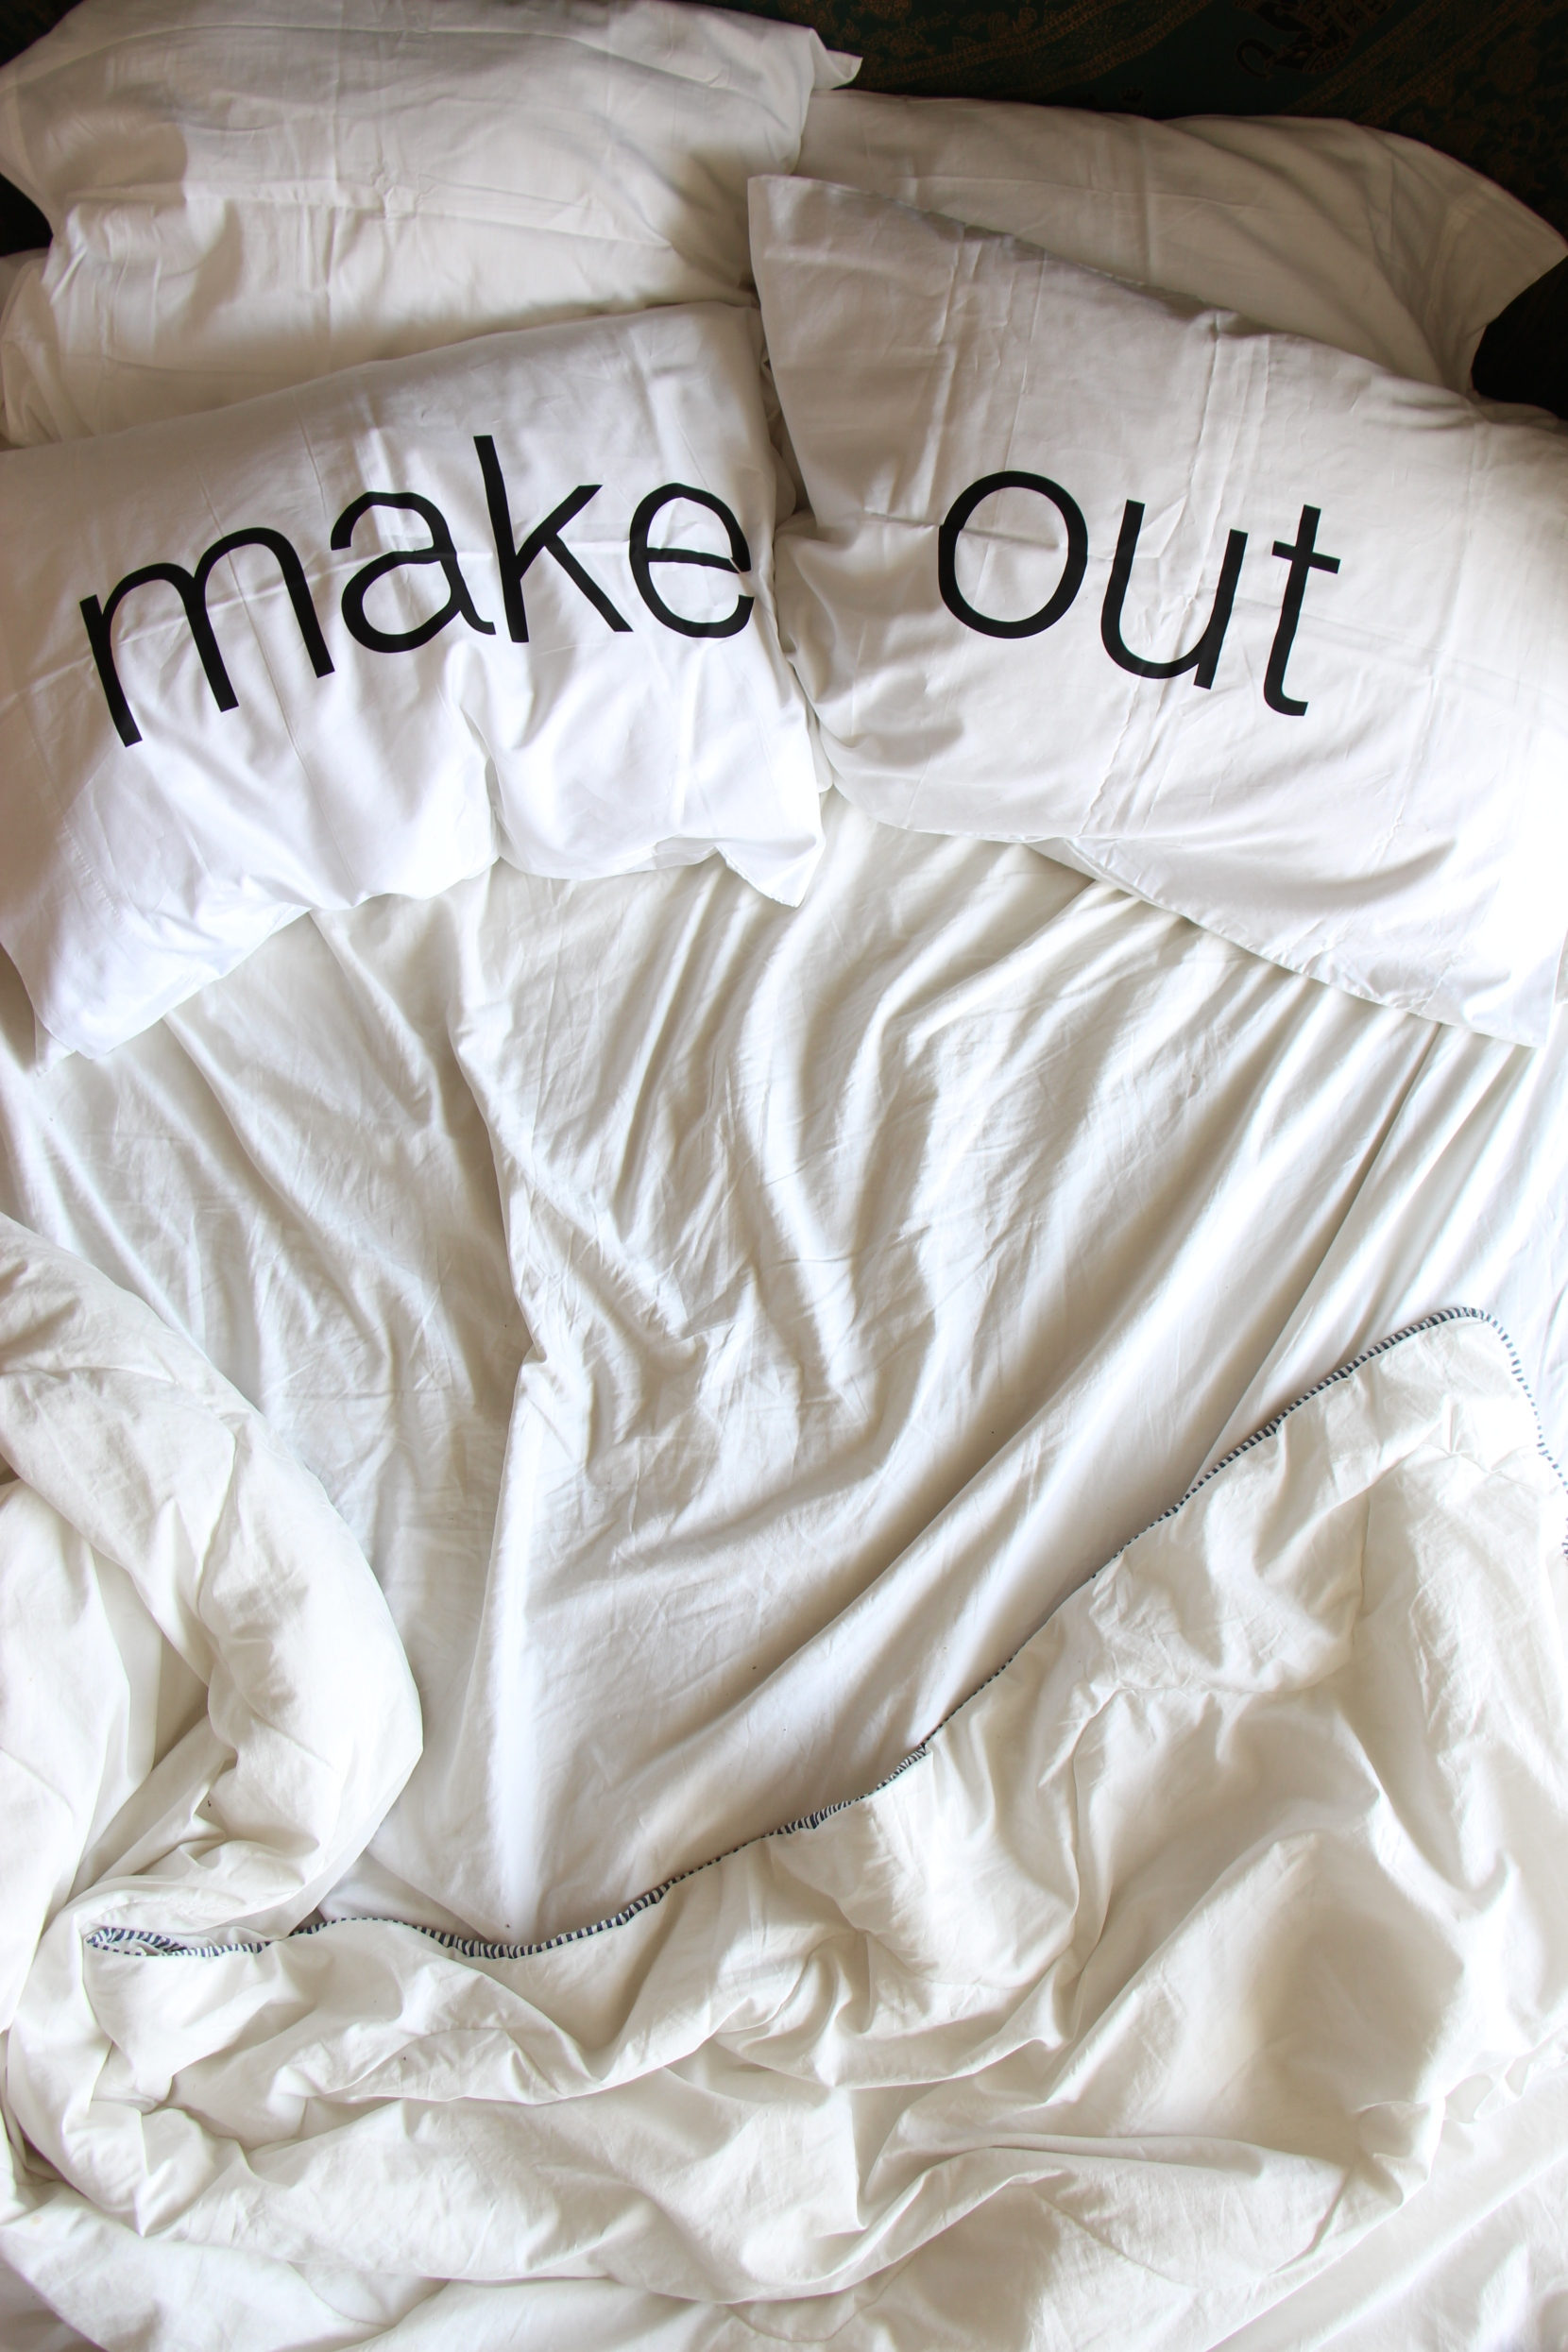 Get up, make out pillowcase